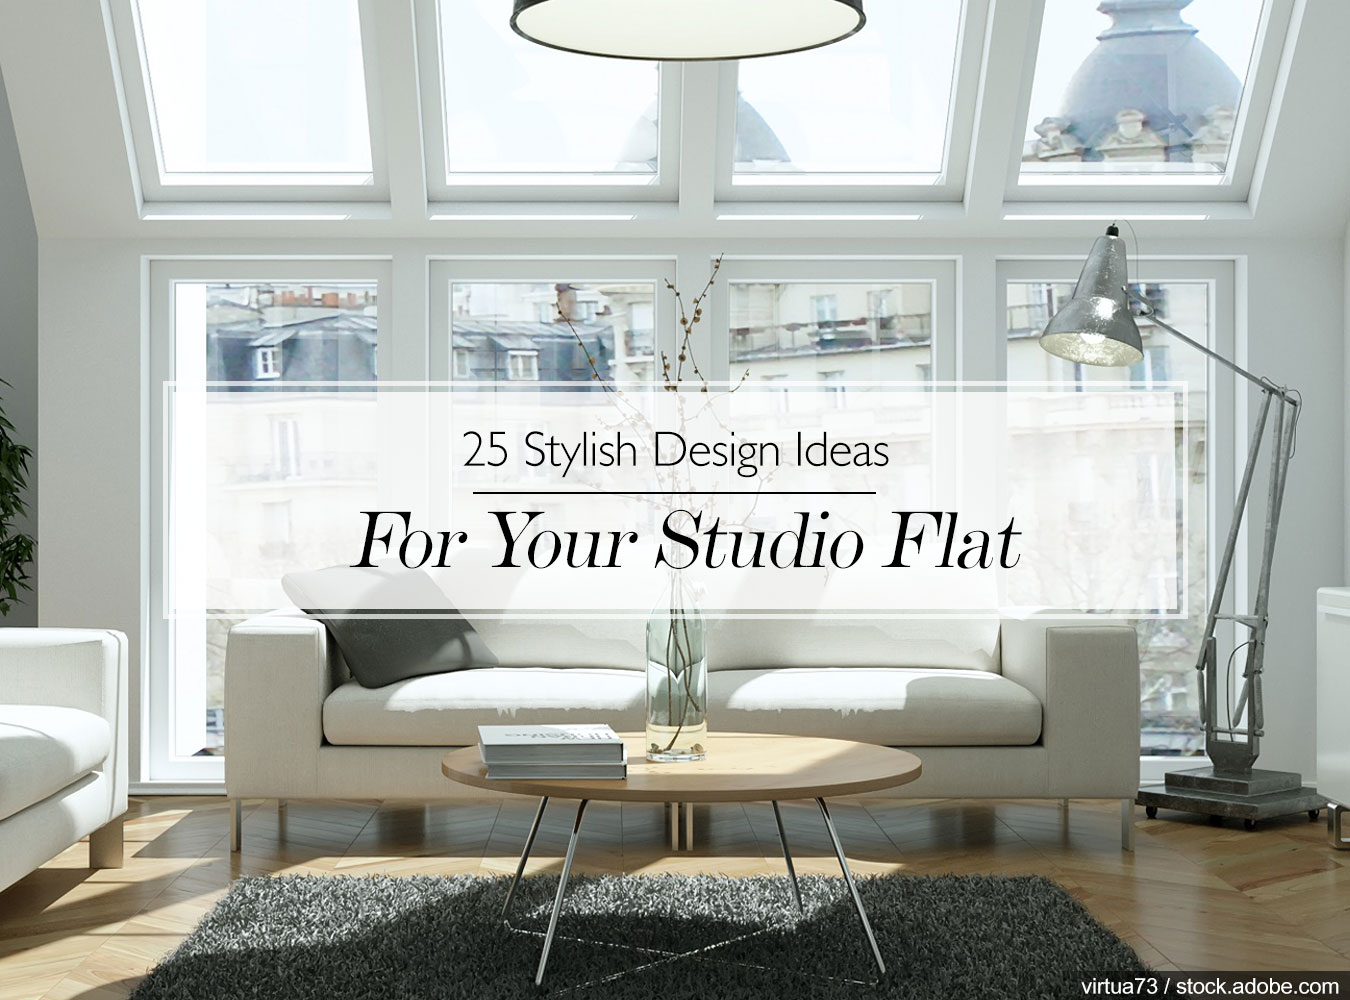 make living room spacious using simple and smart tricks the interior design company Particularly common amongst city dwellers, the studio flat is a property  type becoming increasingly popular. Living in an open-plan city apartment,  ...